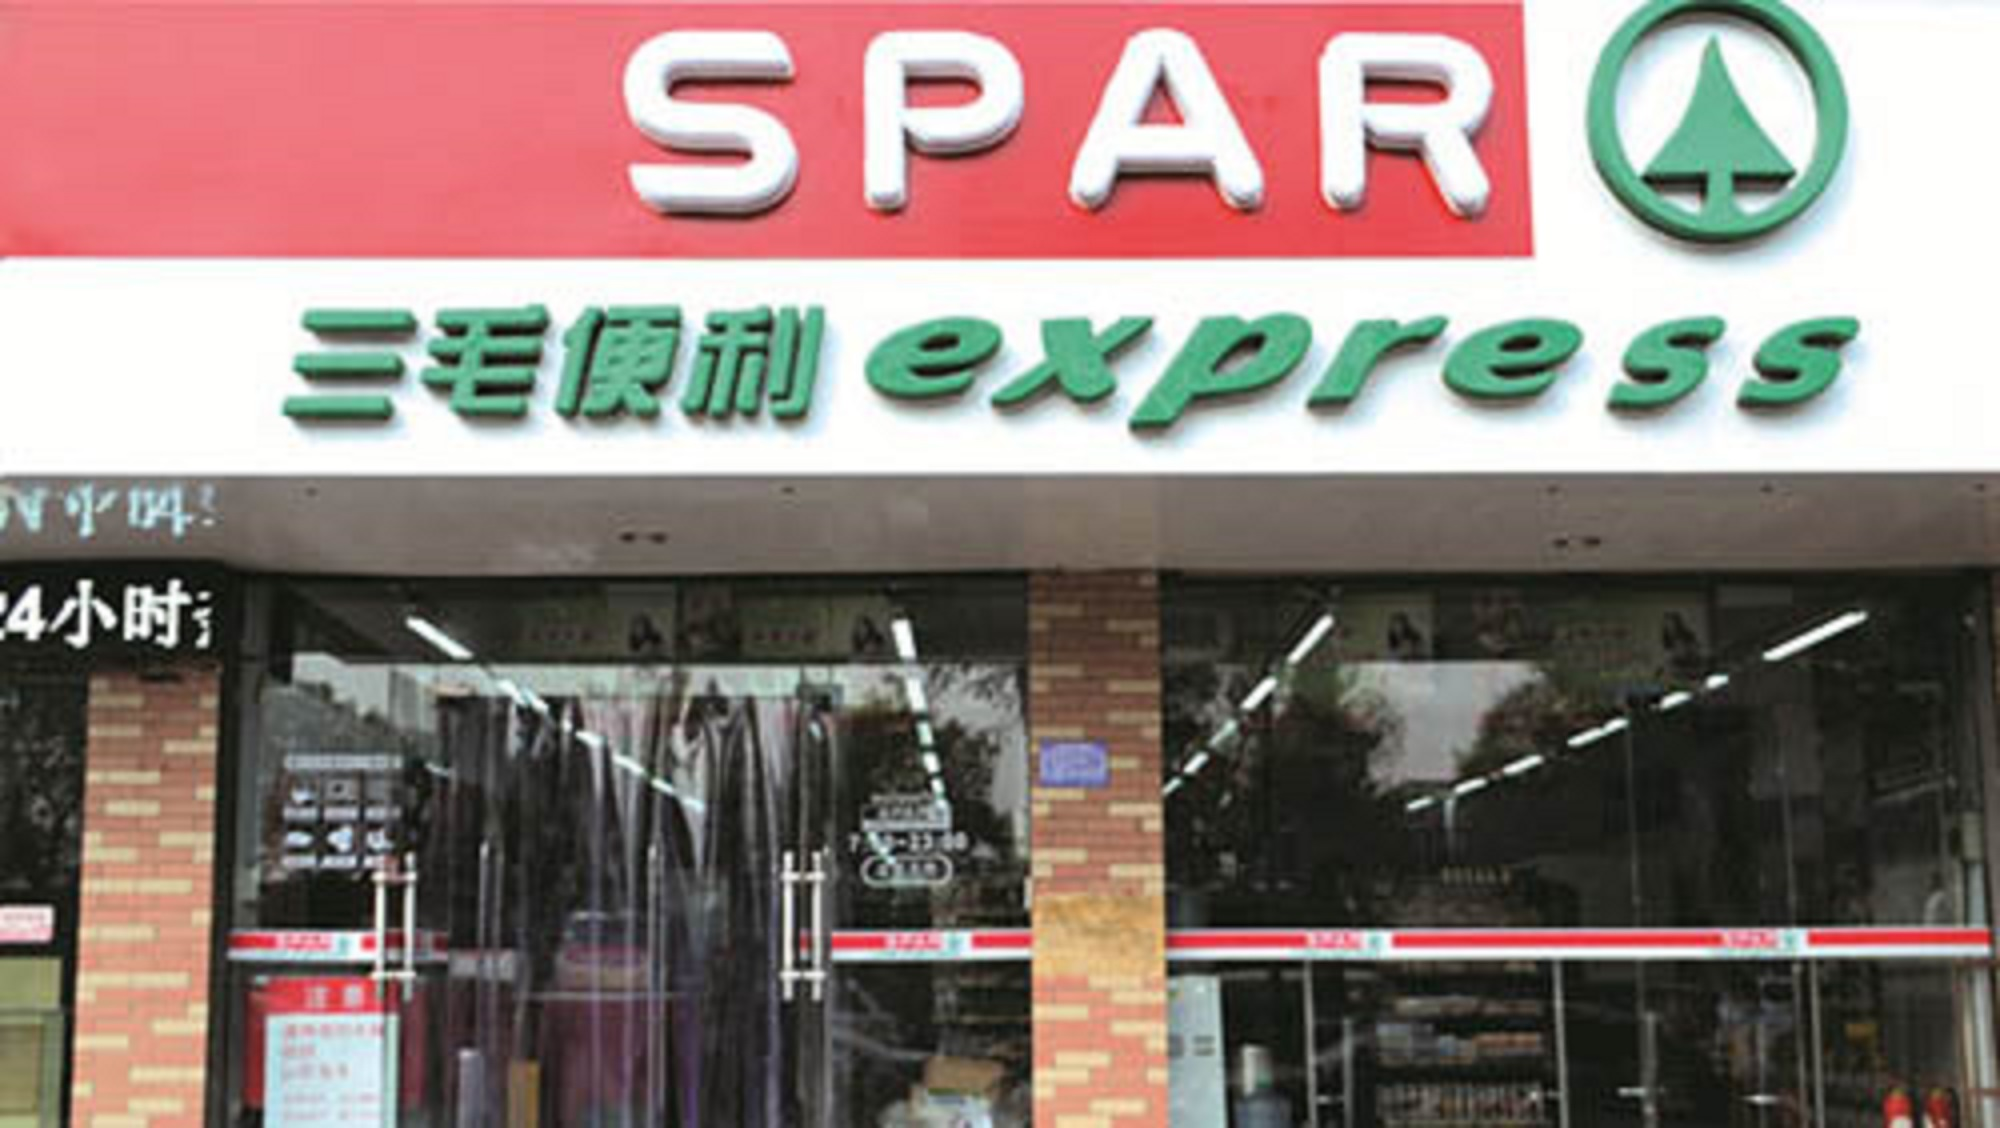 SPAR Express entrance with SPAR logo